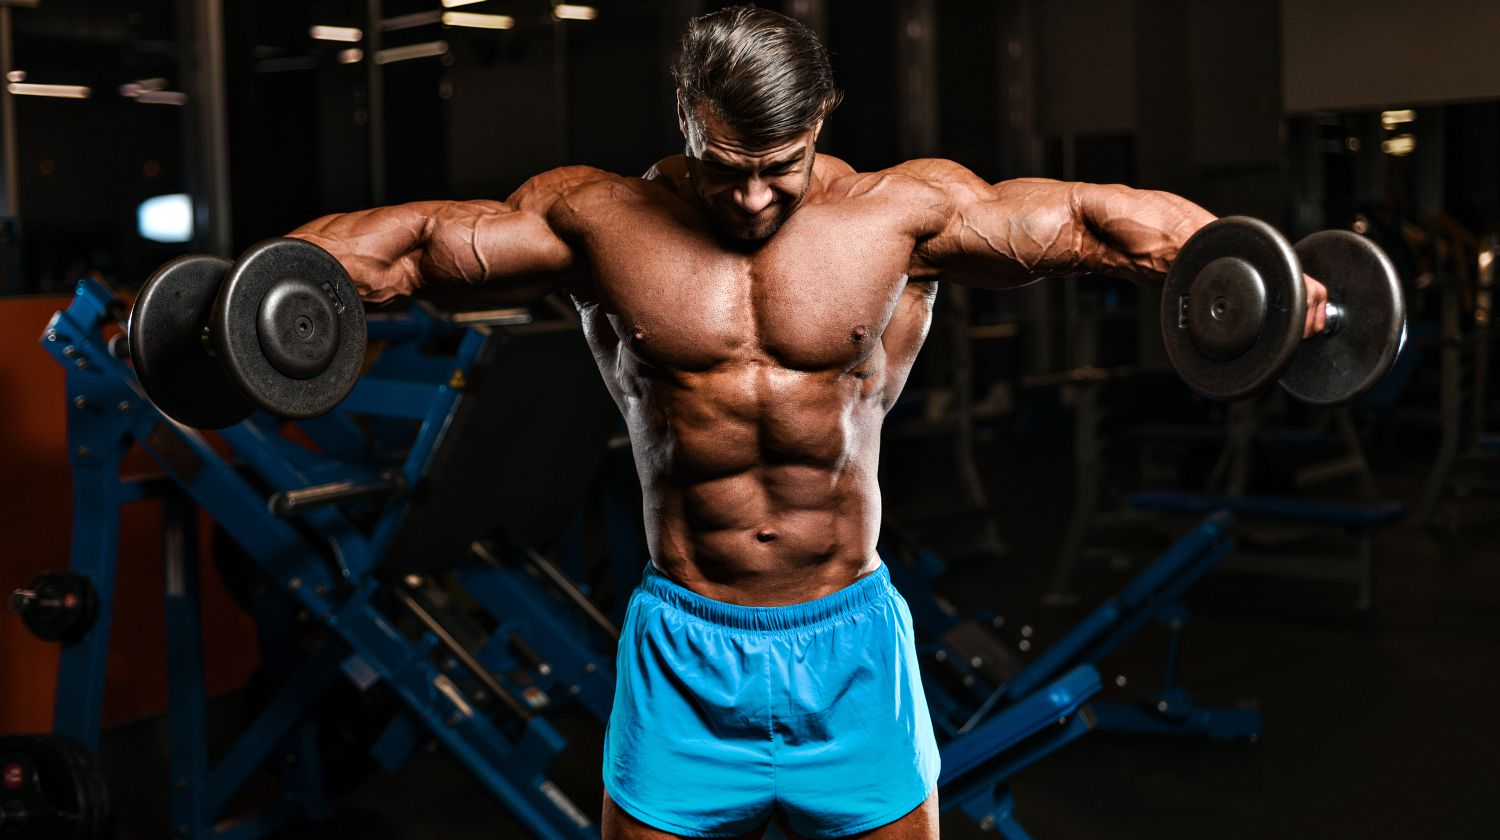 Prohormones | REVIEW | What They Are & What You Should Know